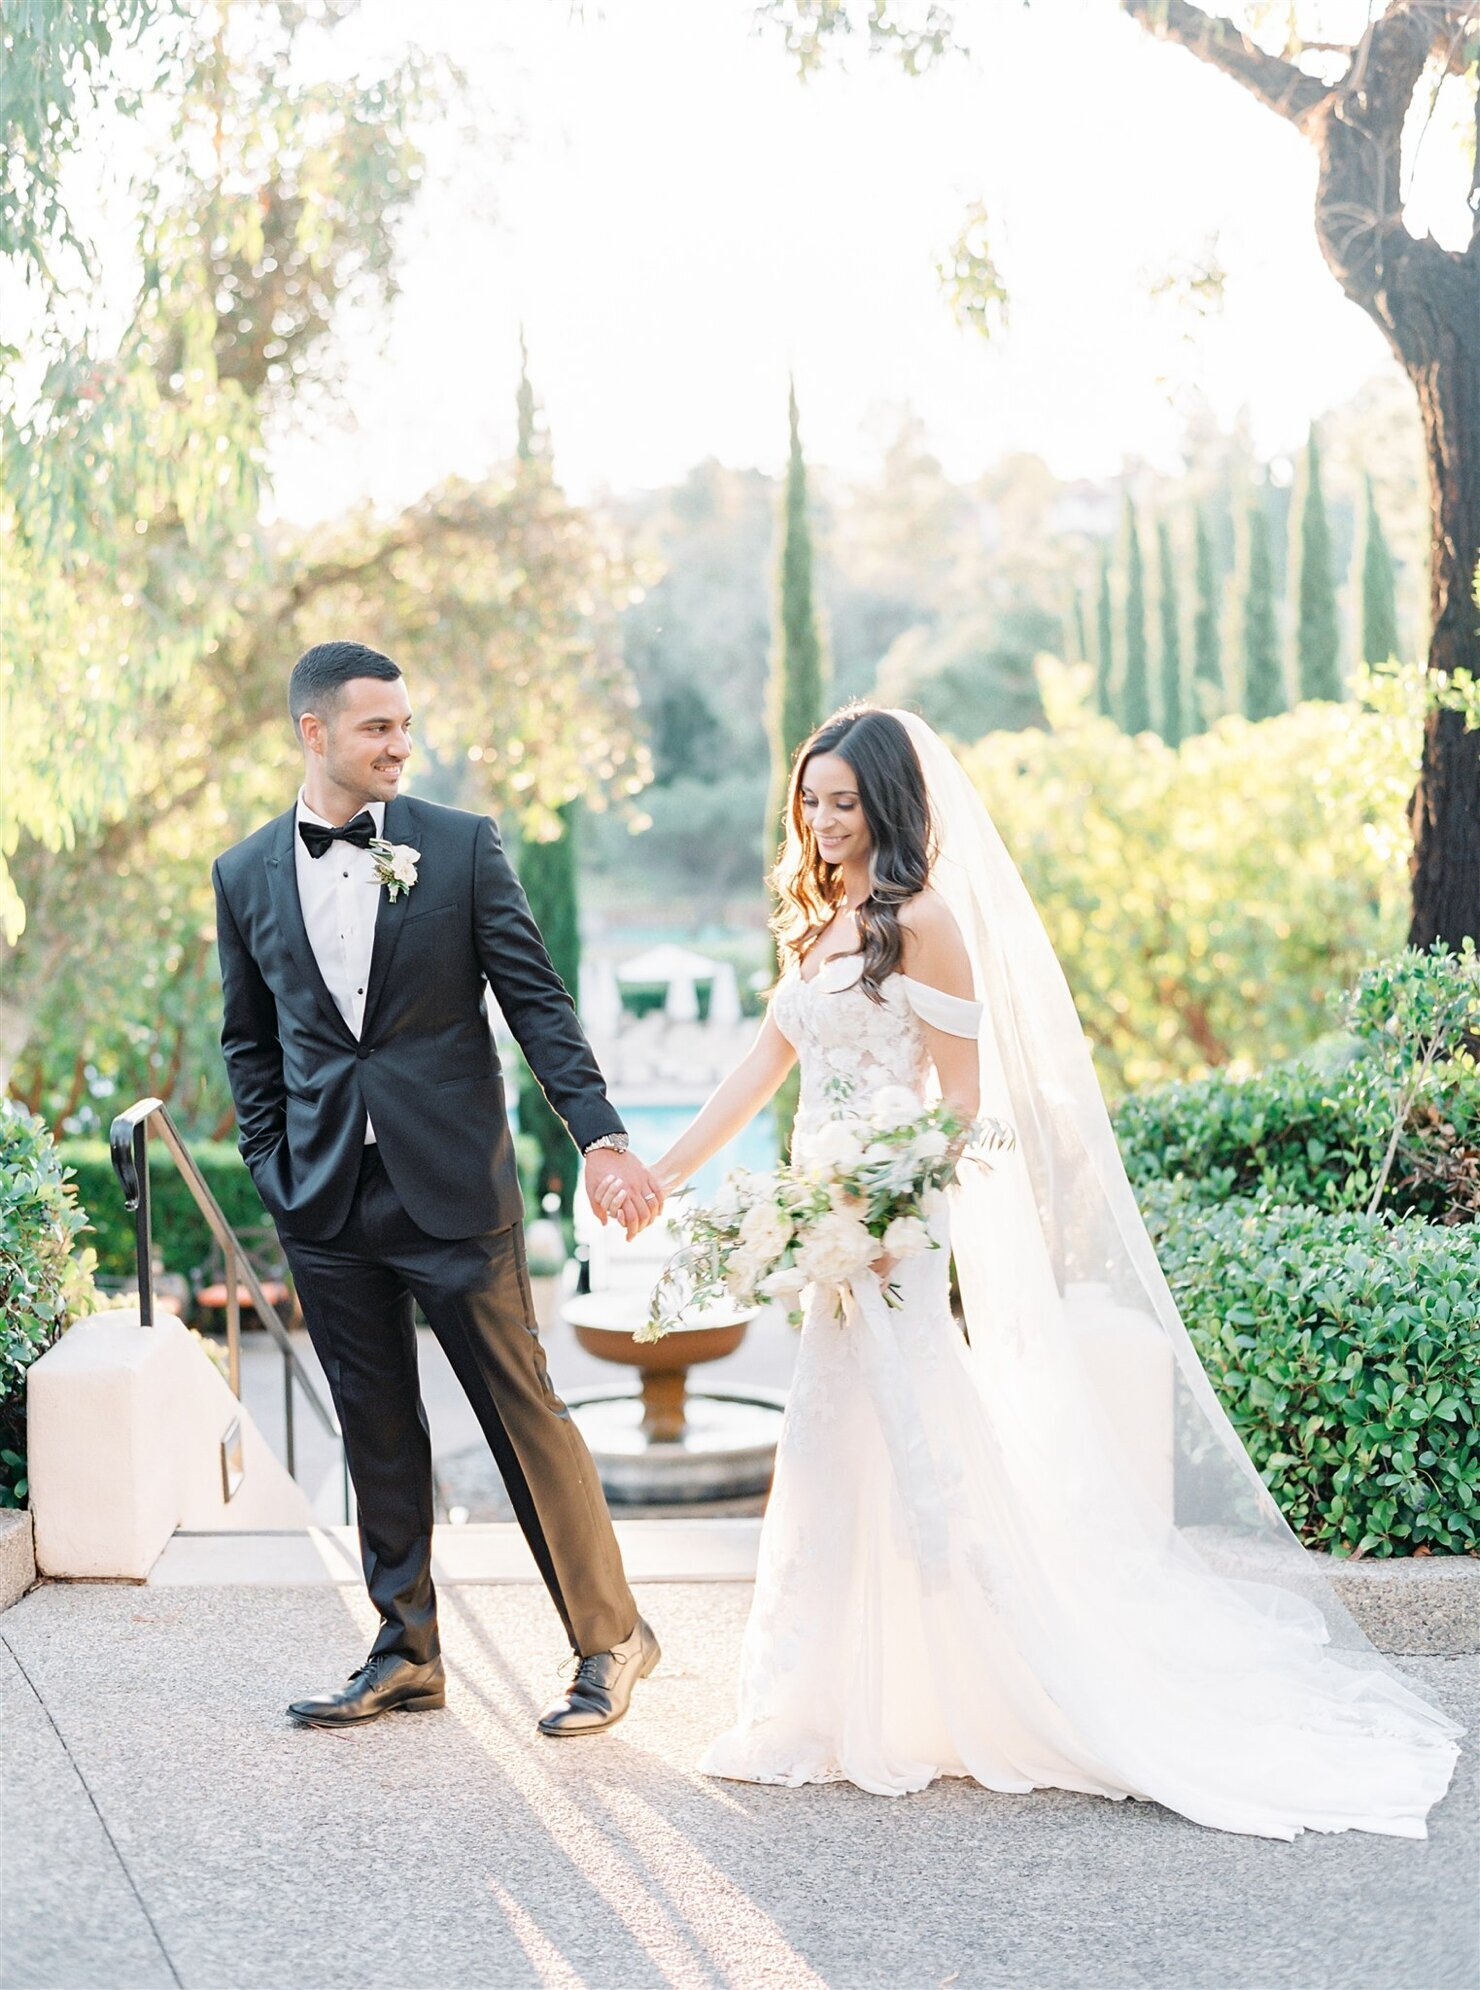 Lauren-Fair-Photography-Best-of-2019-Luxury-Film-Destination-Wedding-Photographer_0699